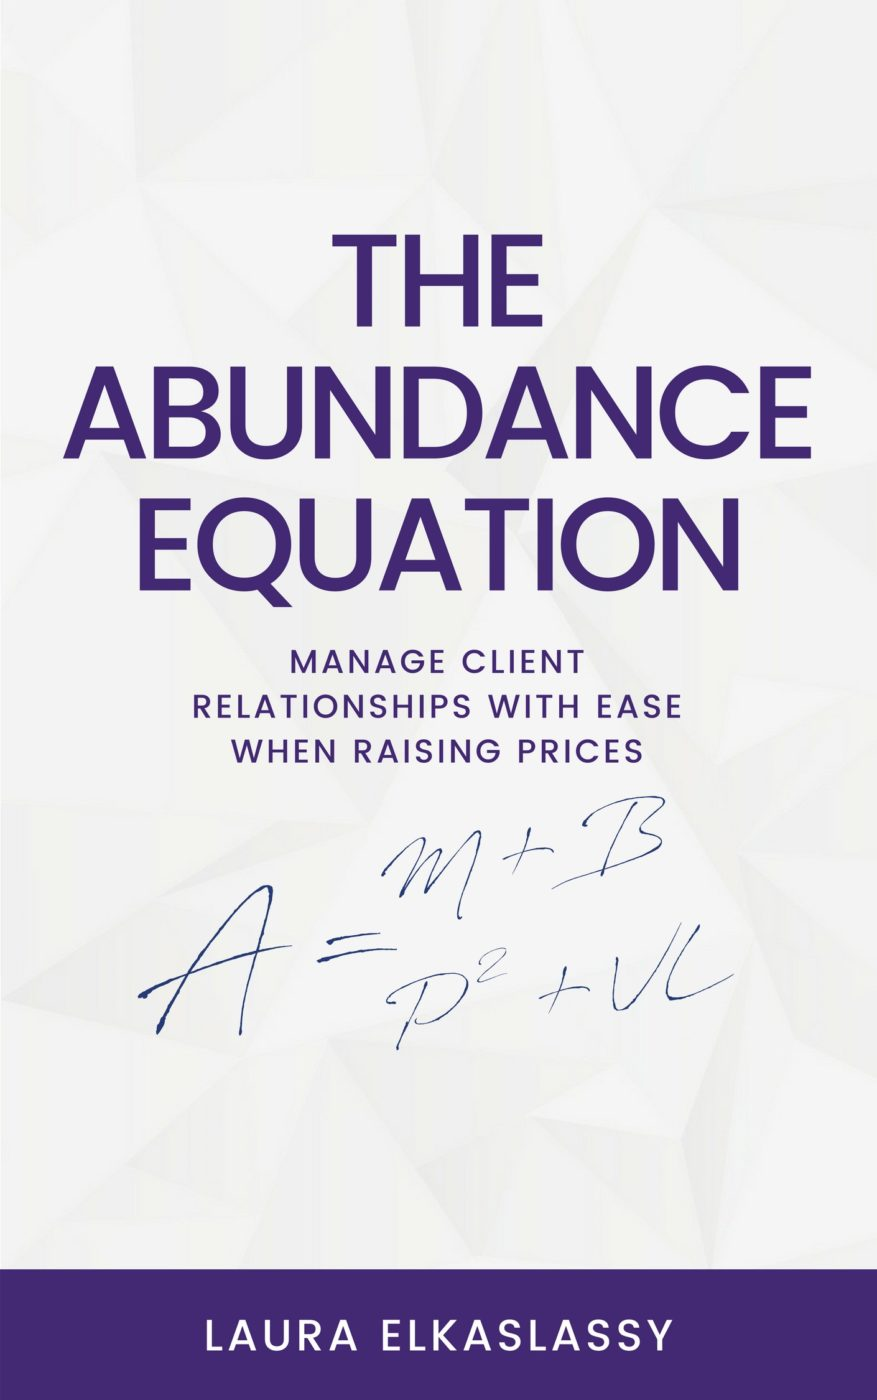 The Abundance Equation - Laura Elkaslassy